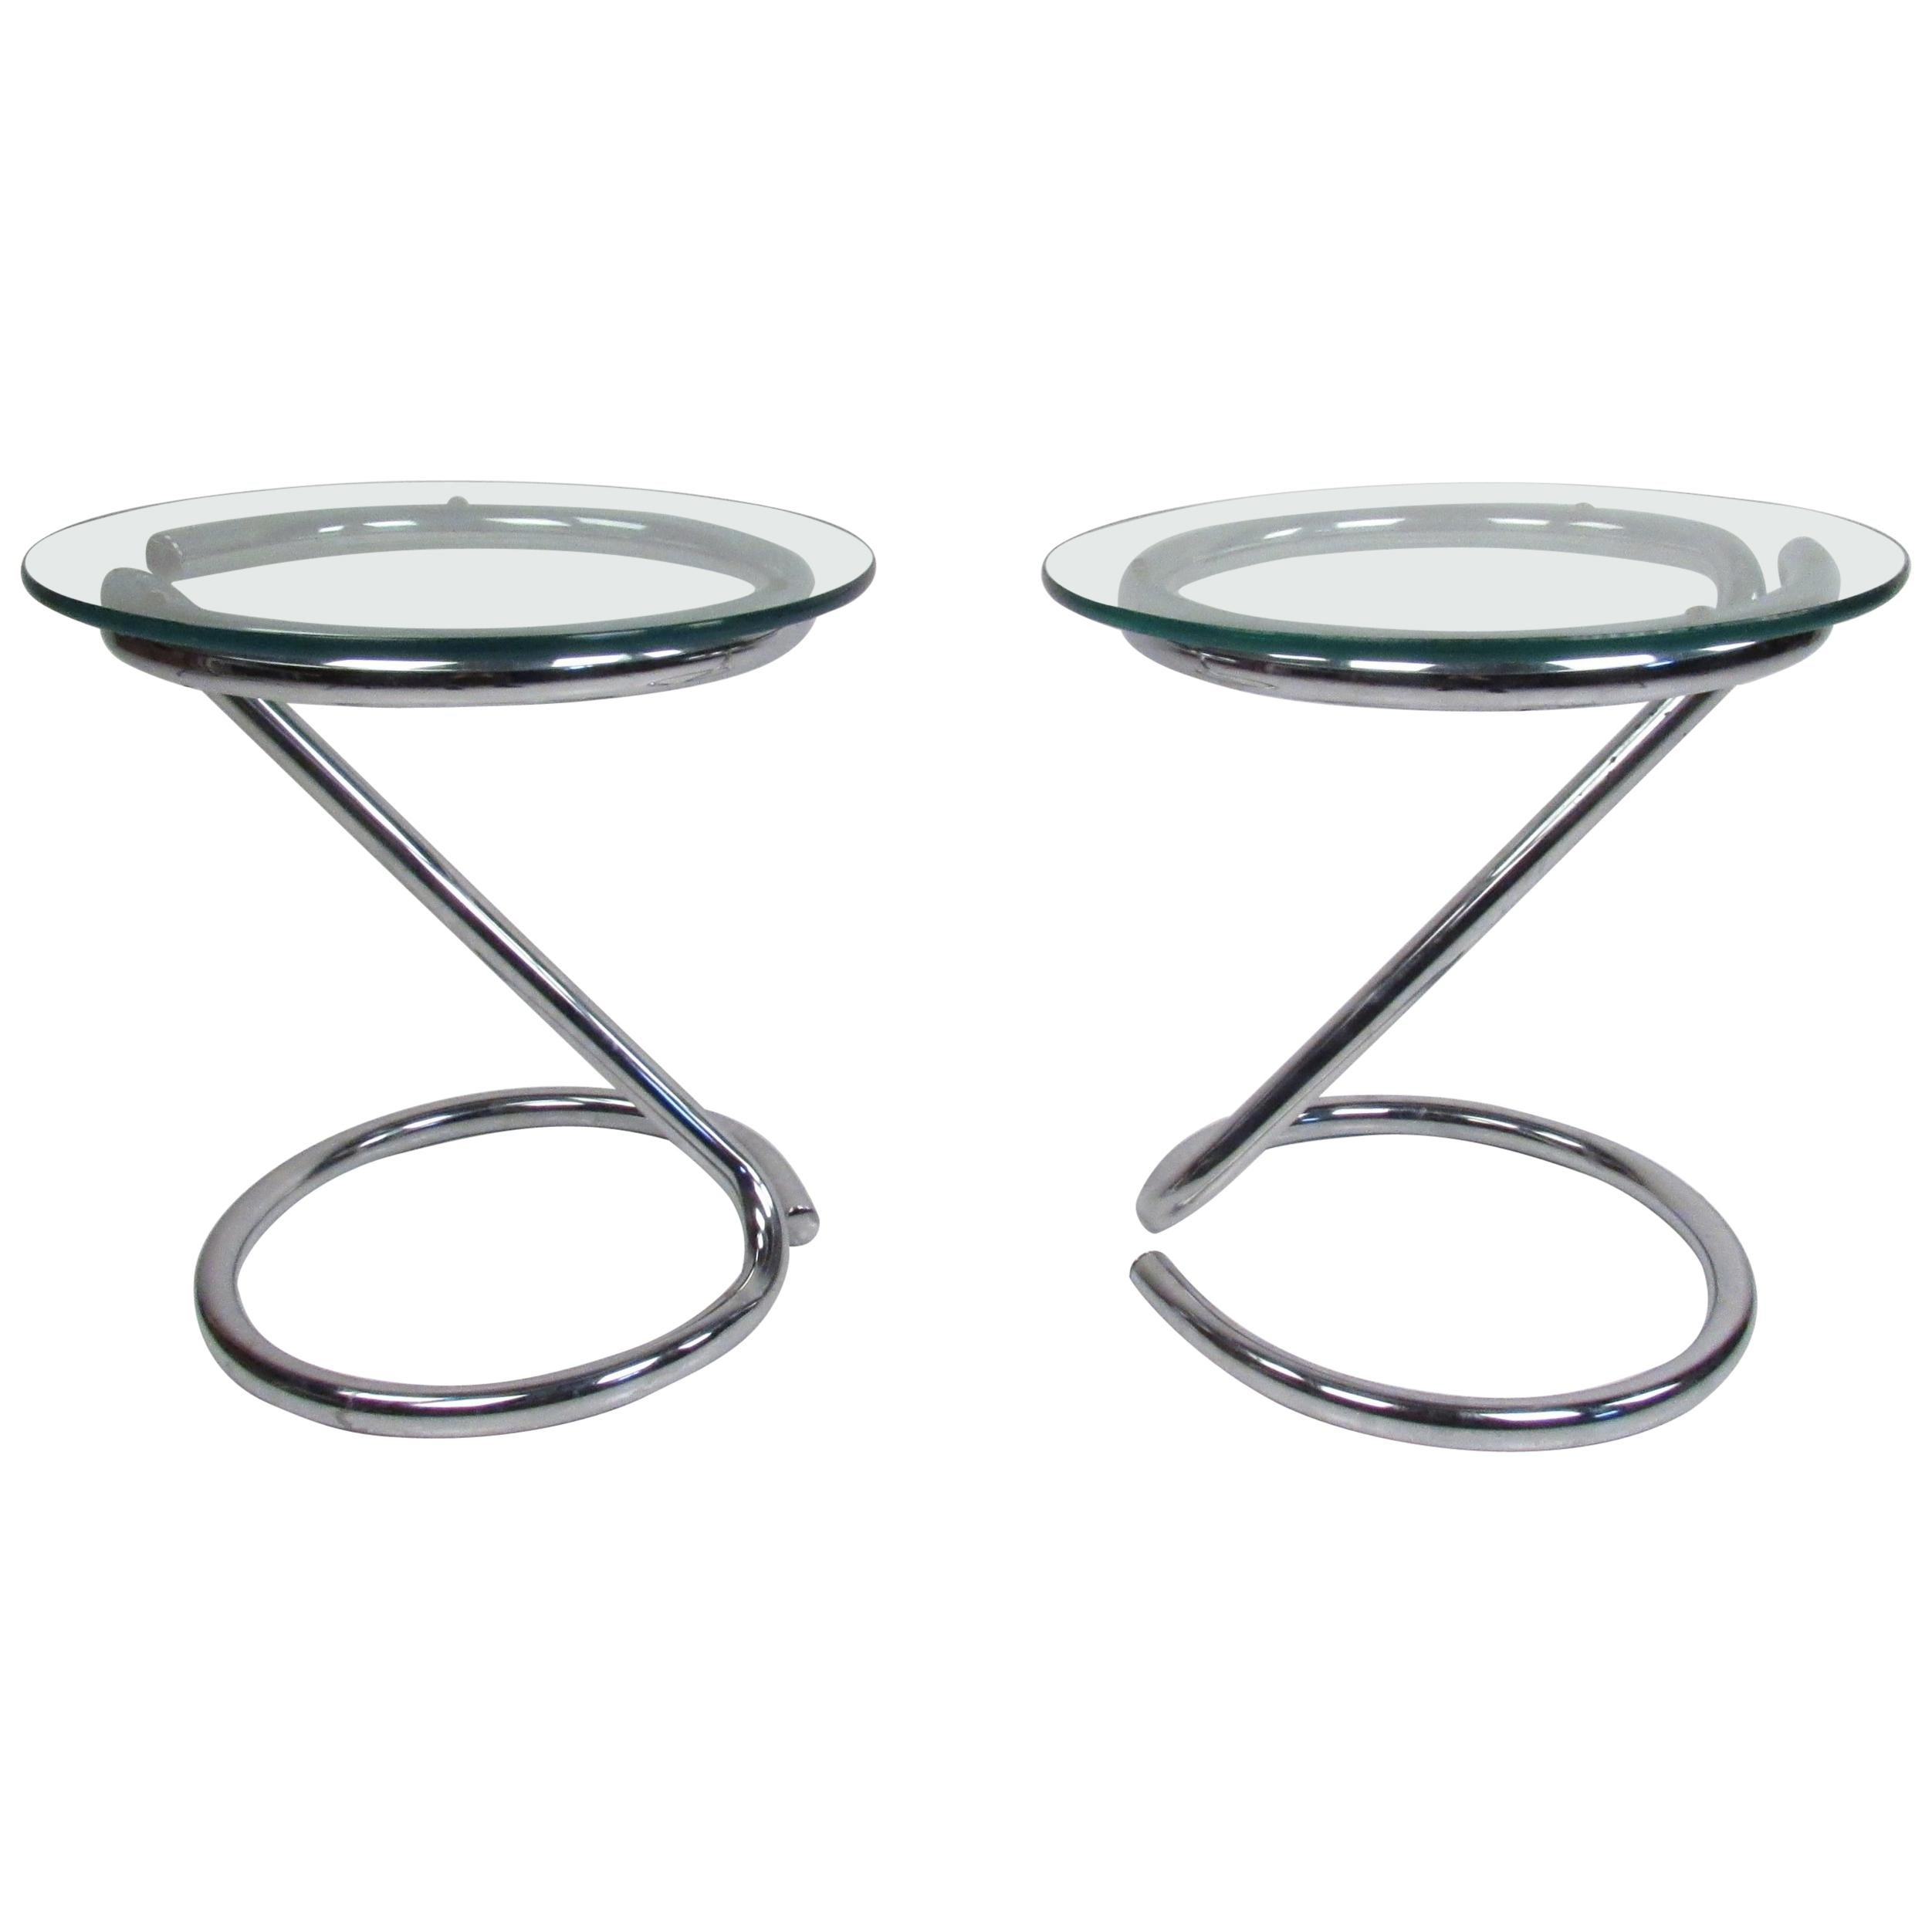 Pair of Midcentury Cantilever Chrome End Tables